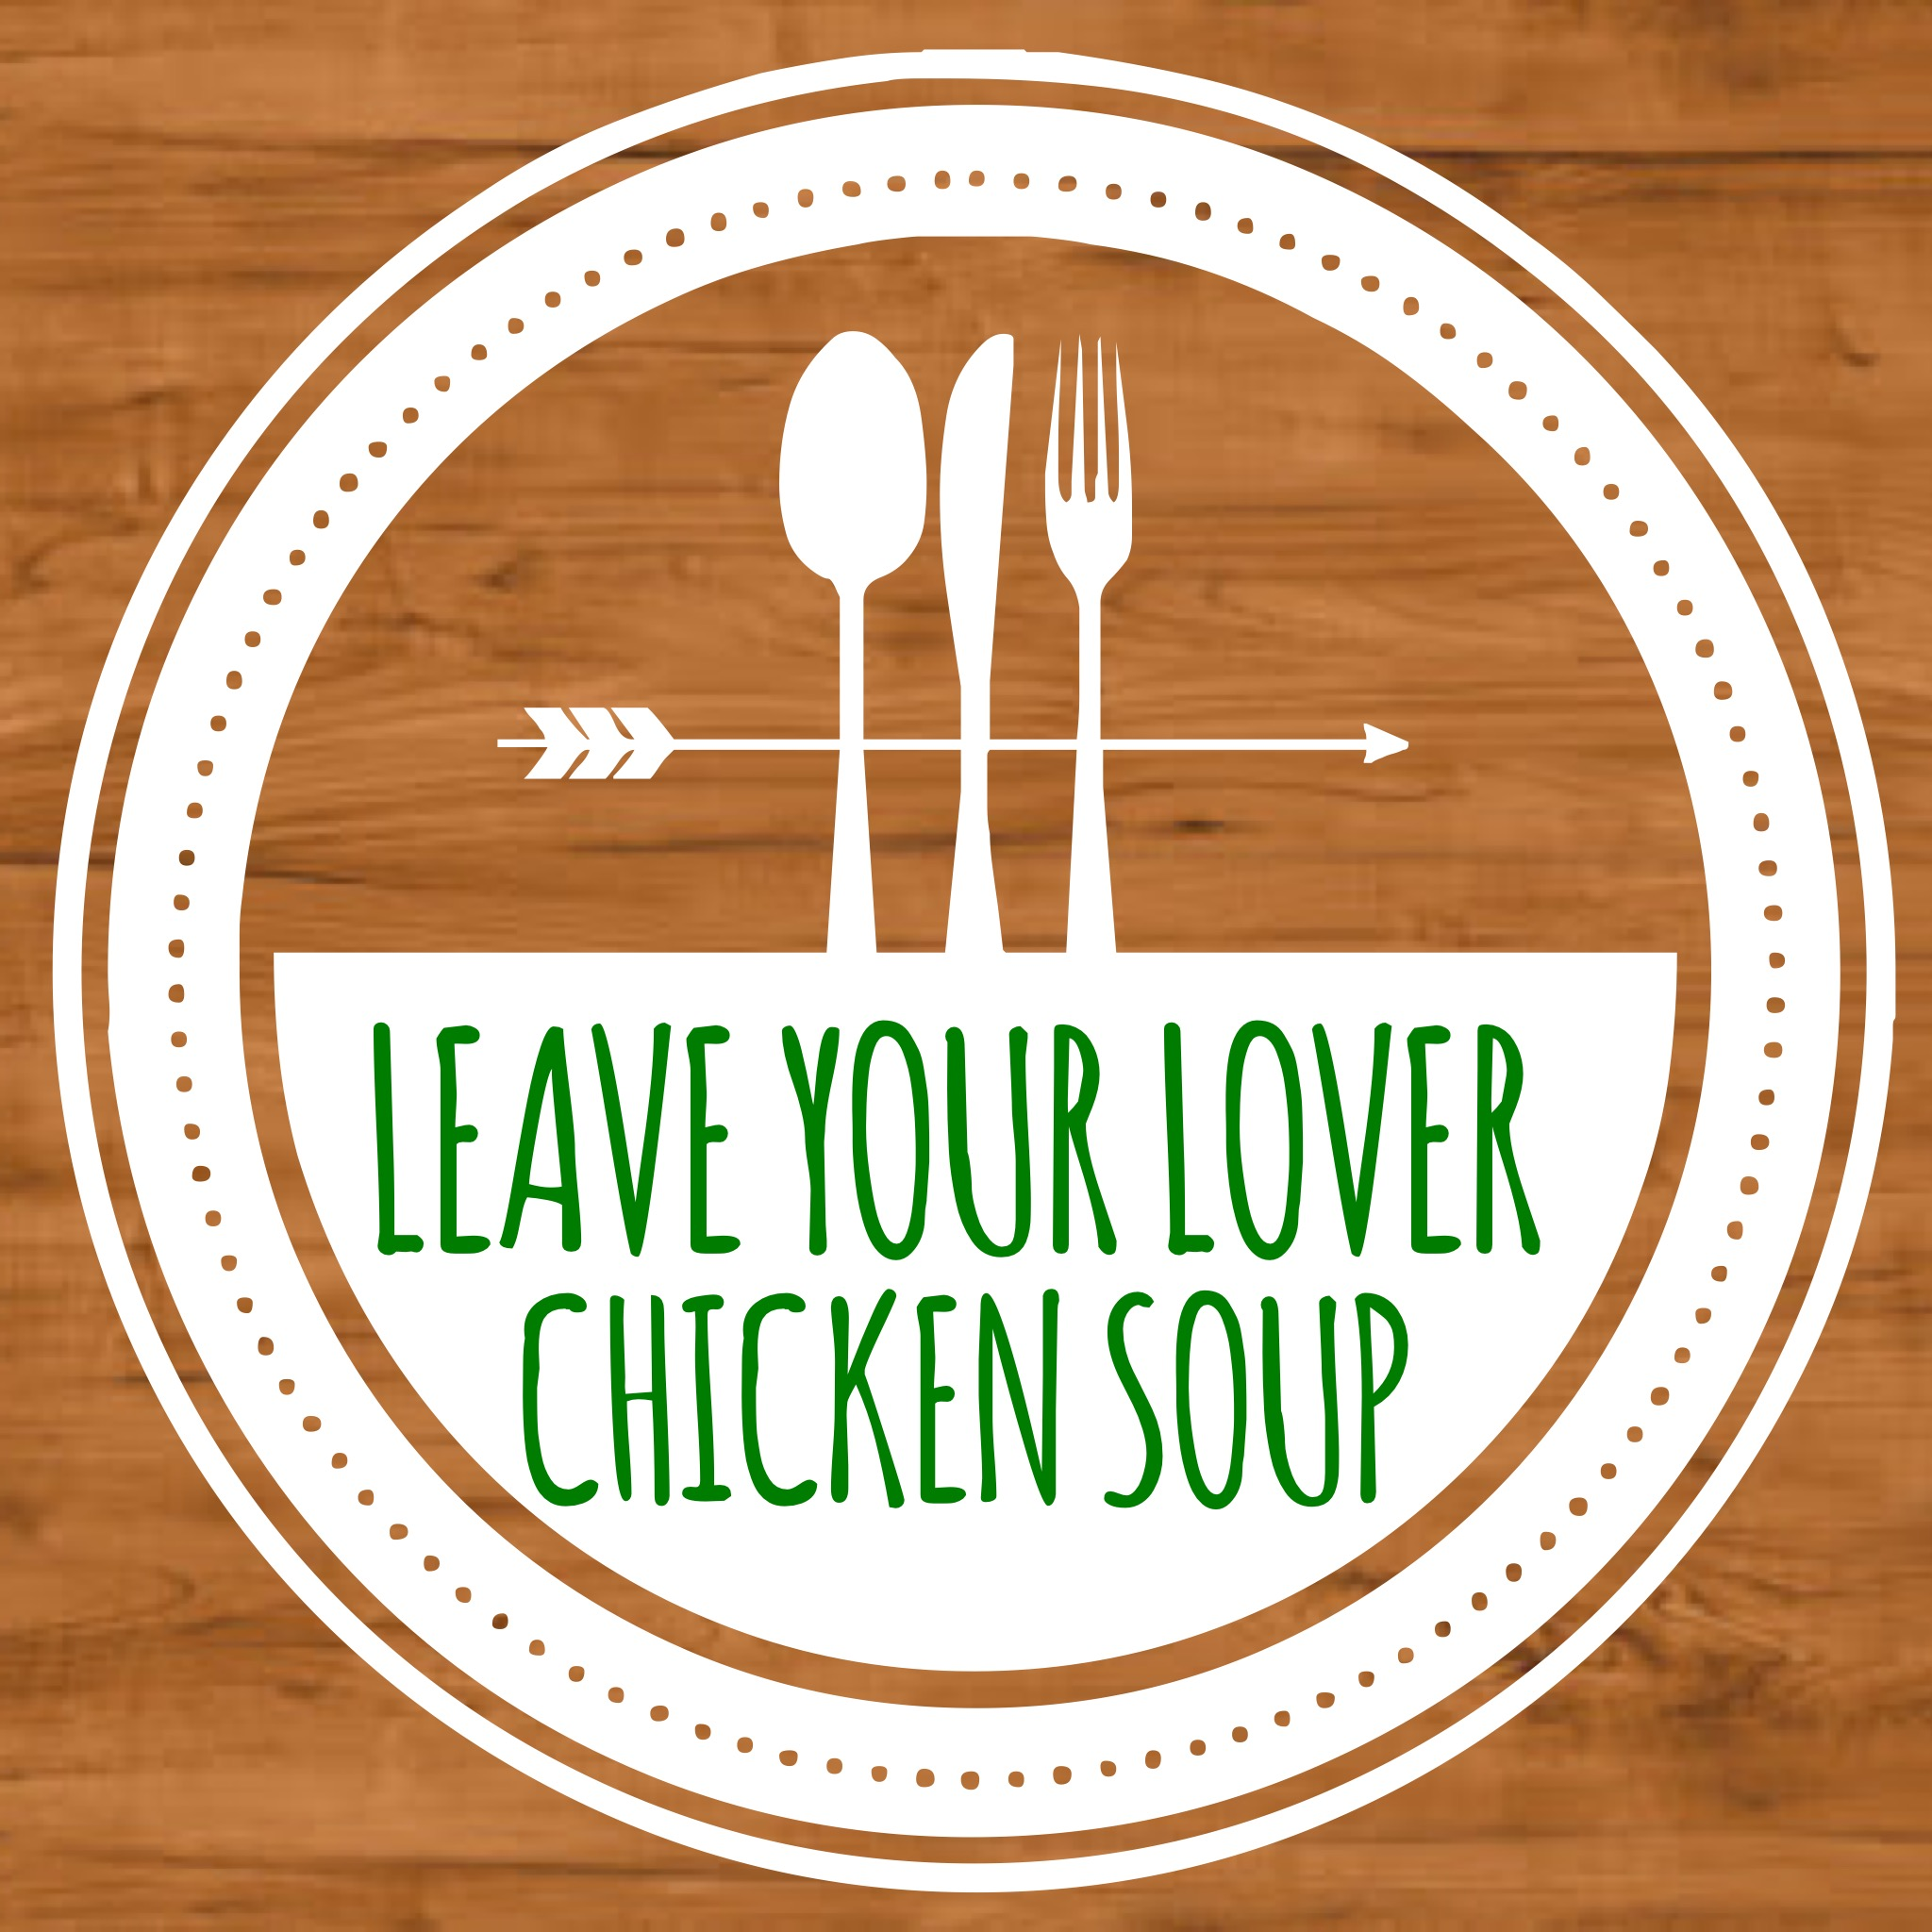 Leave your lover chicken soup